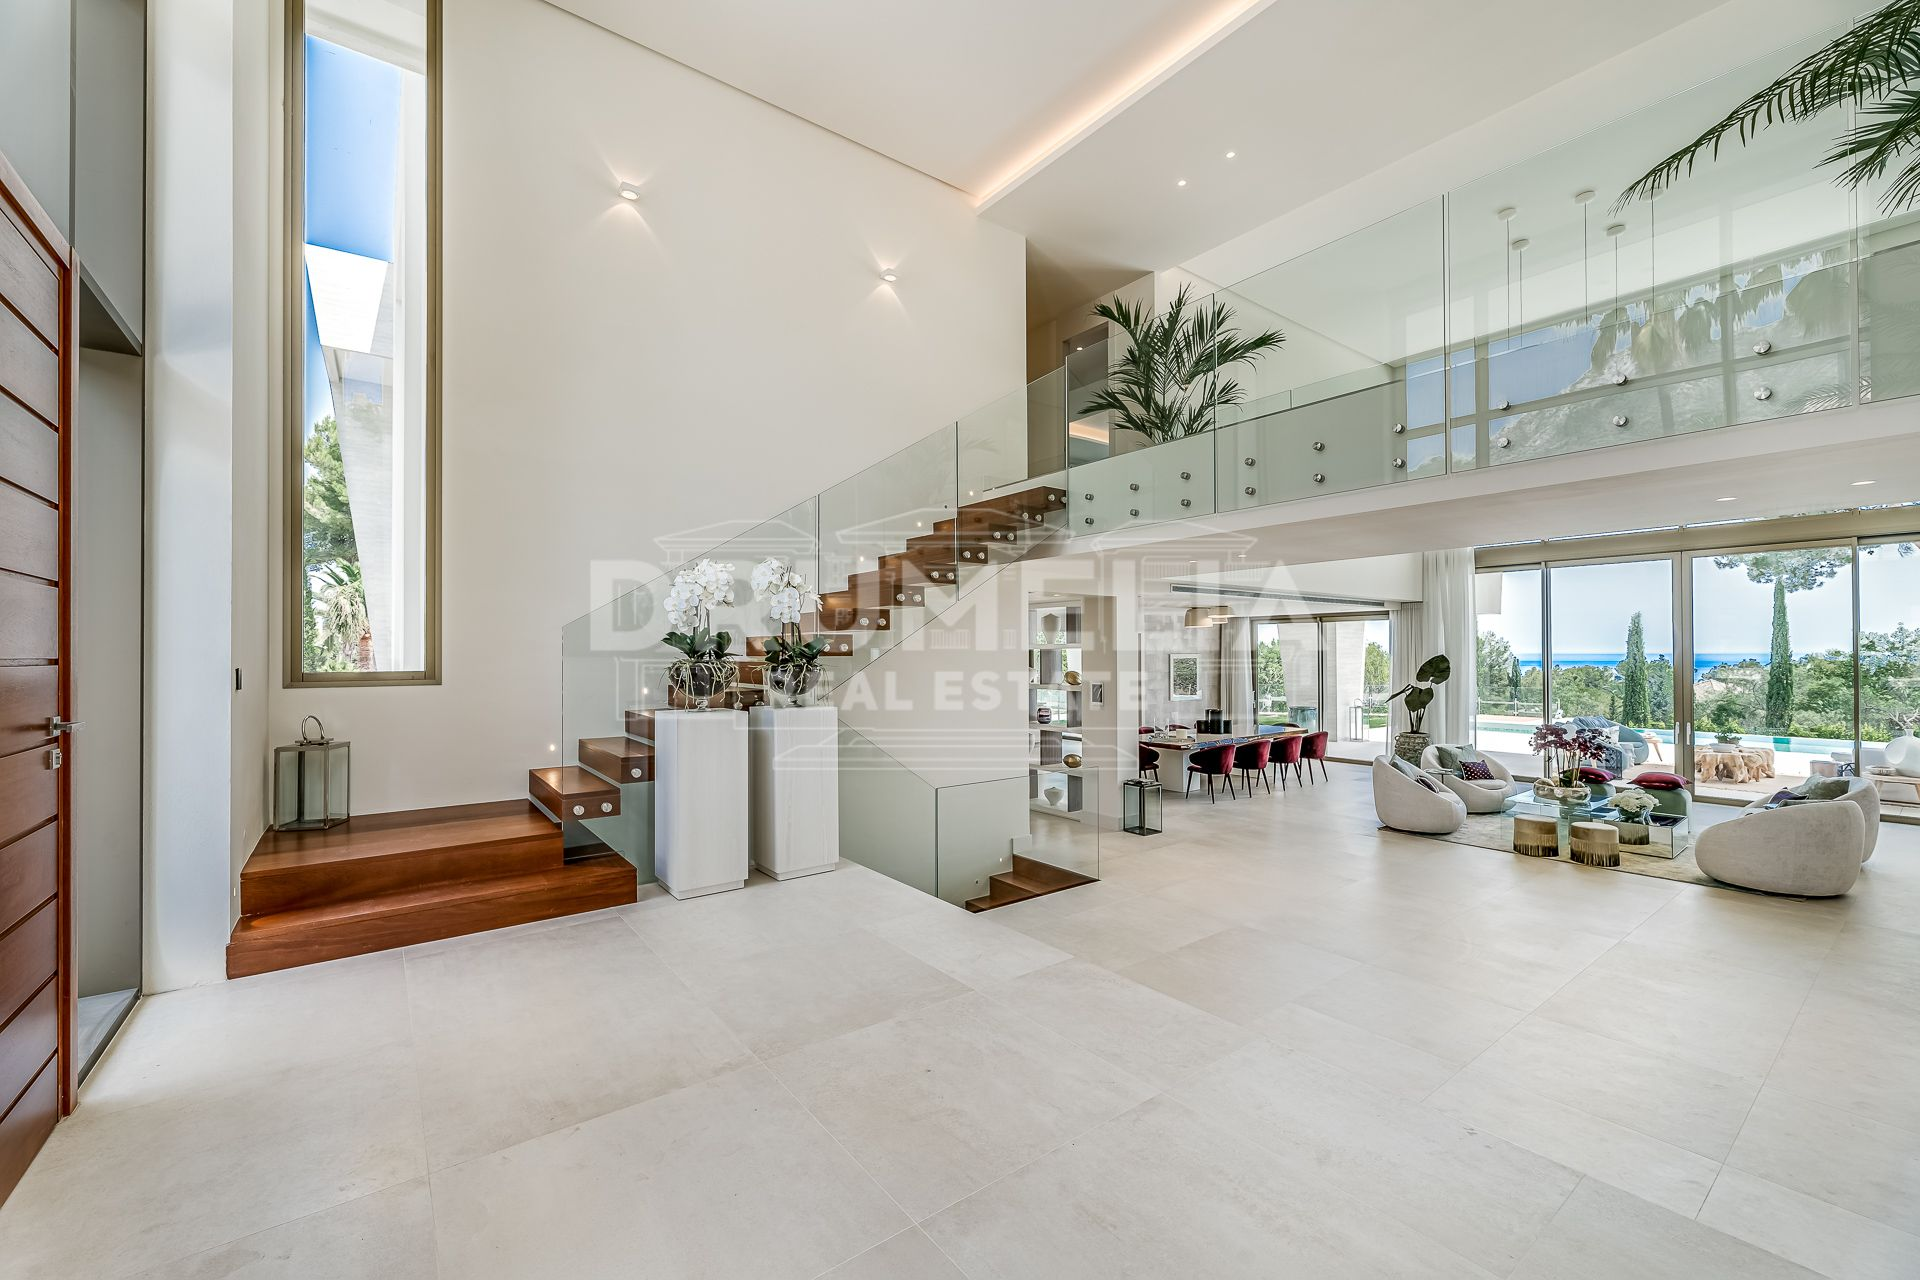 Marbella Golden Mile, Brand-New Stunning Luxury Villa, Sierra Blanca, Marbella Golden Mile